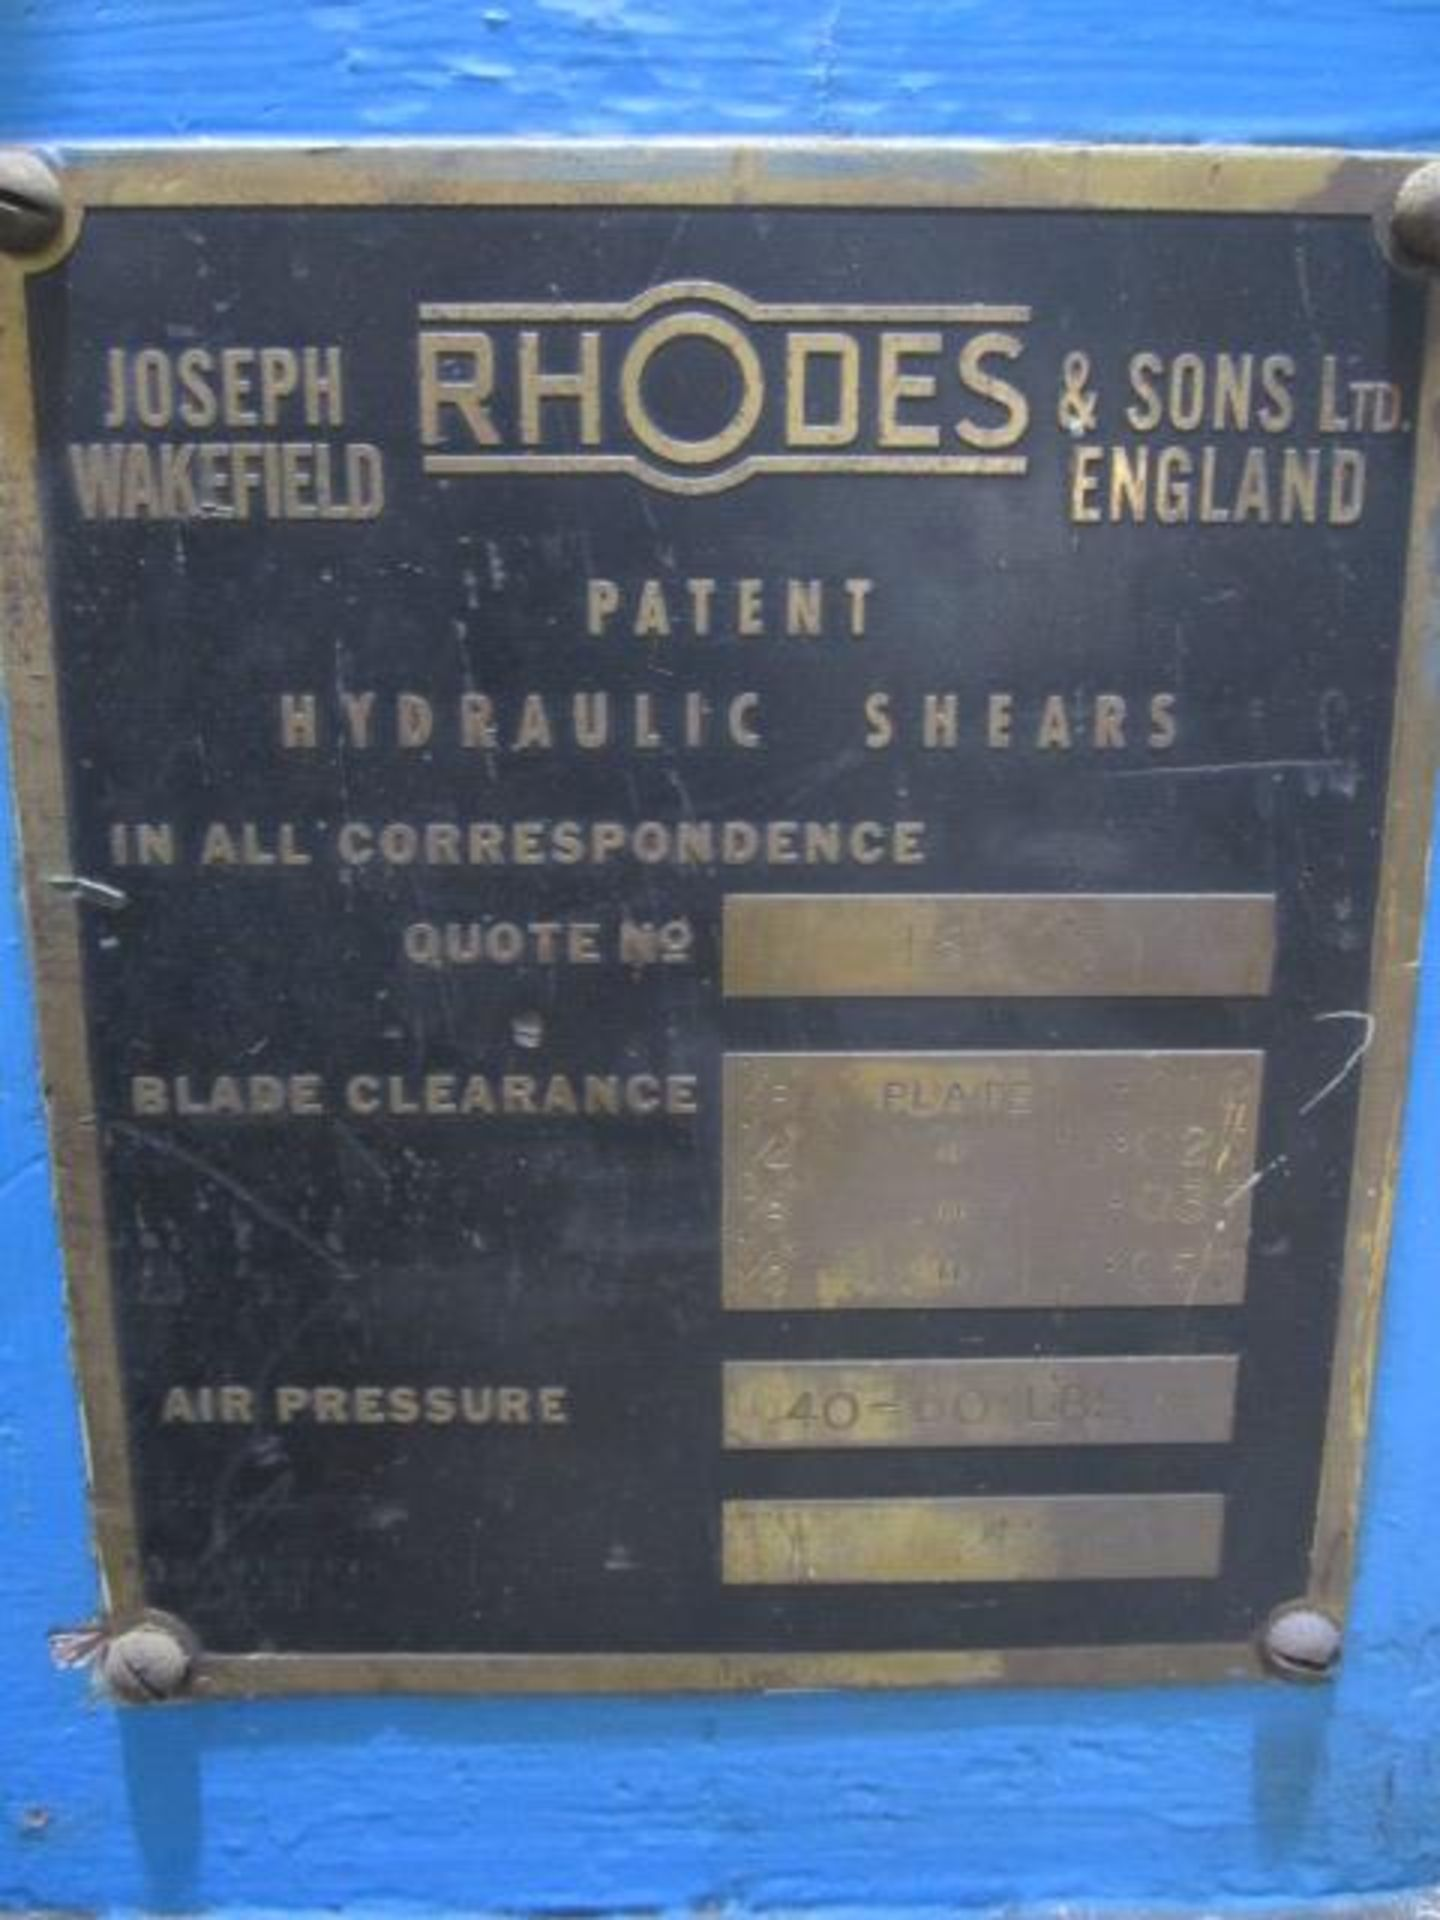 Rhodes 10ft heavy gauge hydraulic guillotine, serial no. 15603, power back gauge, front supports, - Image 3 of 9